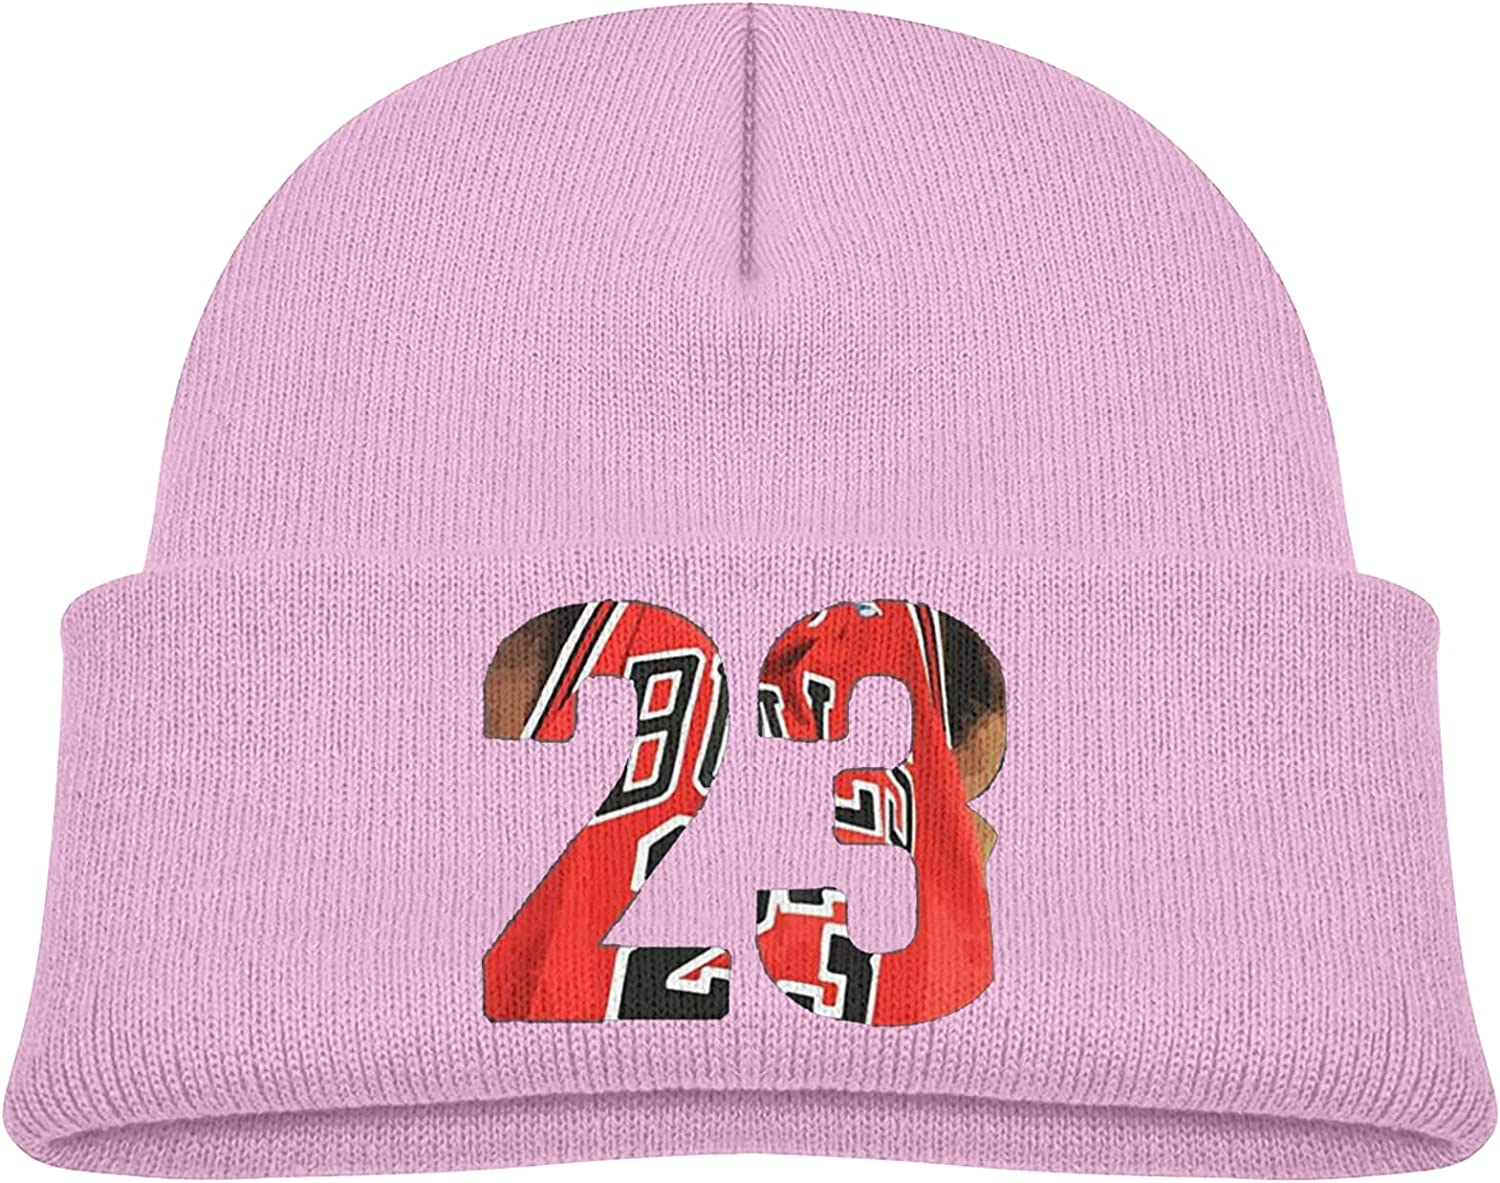 Jordan Basketball 23 Michael Baby Beanie High quality new Soft Infant specialty shop Hat Toddler